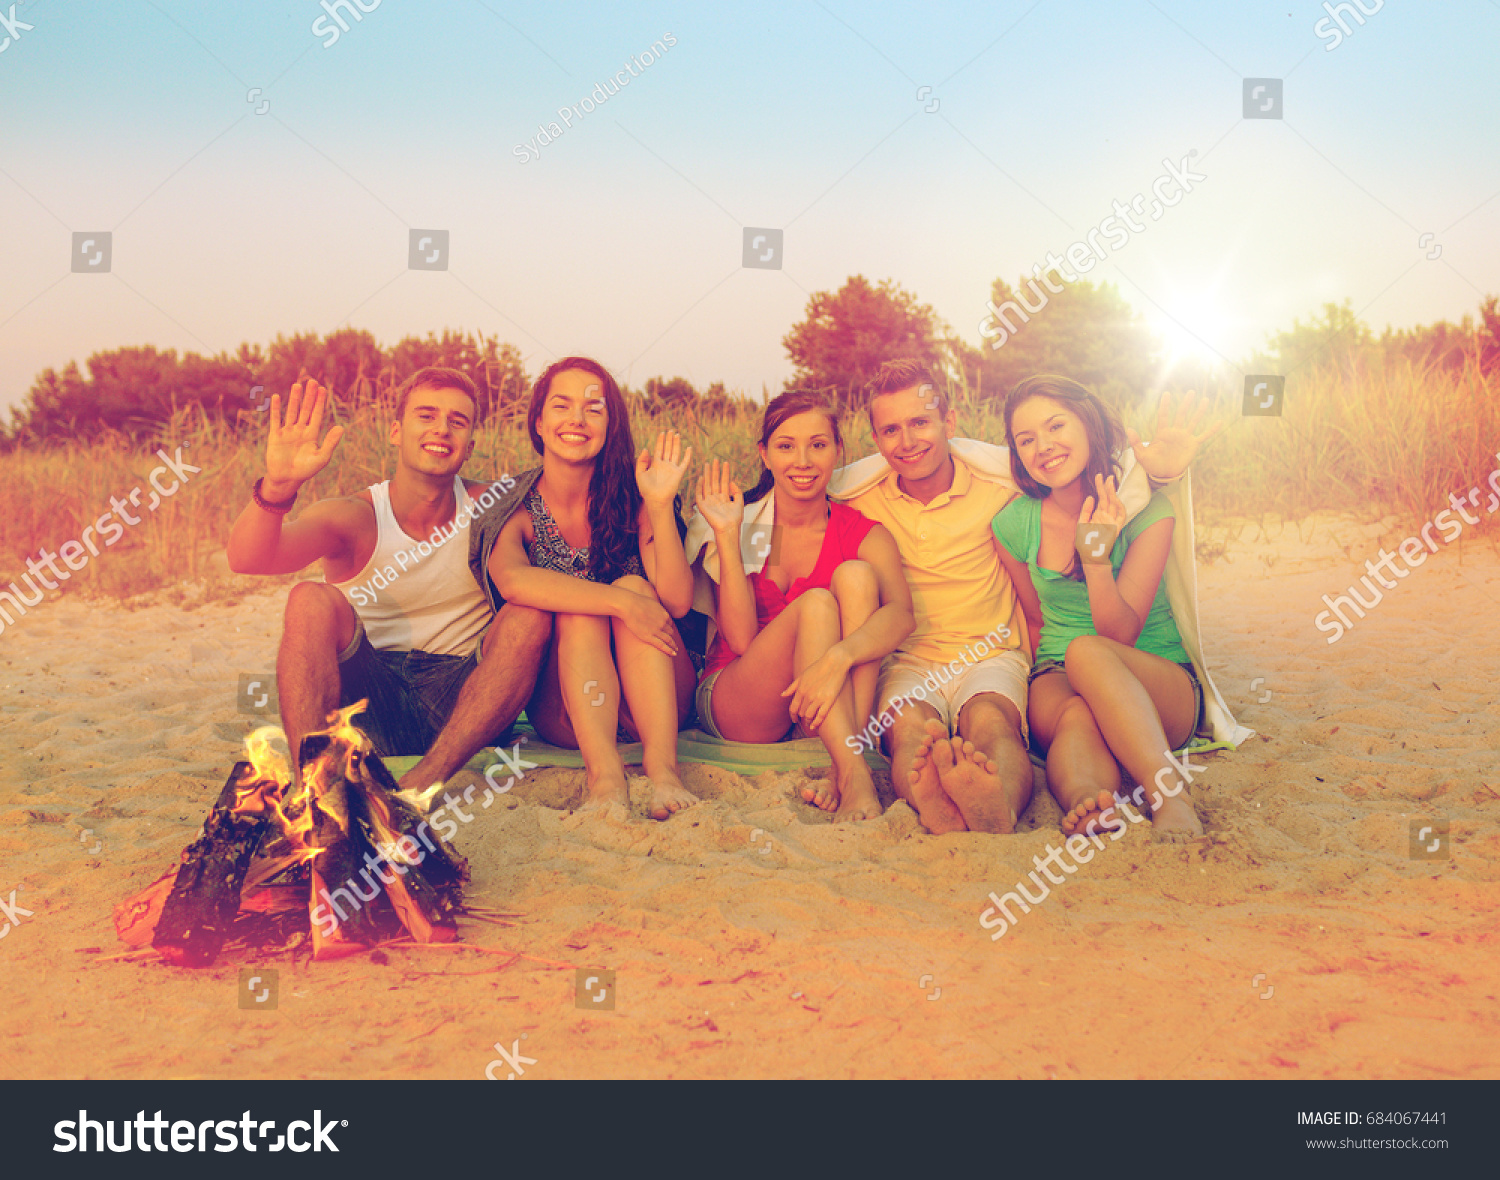 Friendship Summer Vacation Holidays Gesture And People Concept